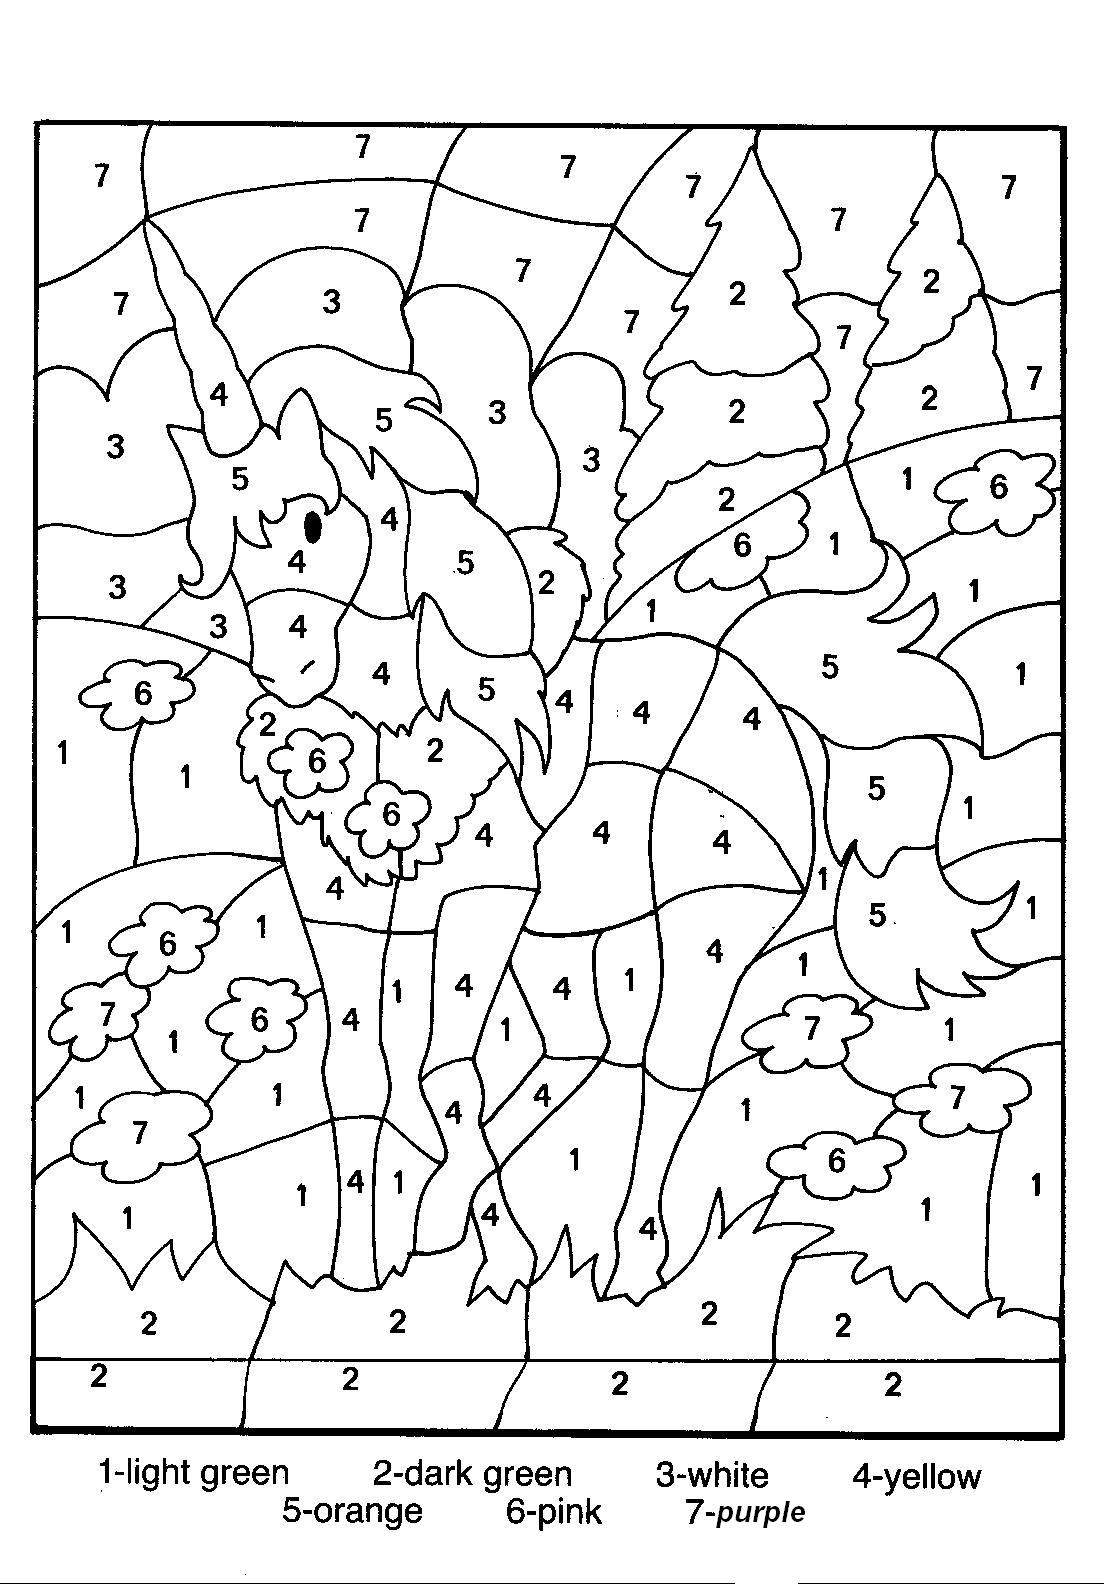 coloring pages with numbers Kaysmakehaukco